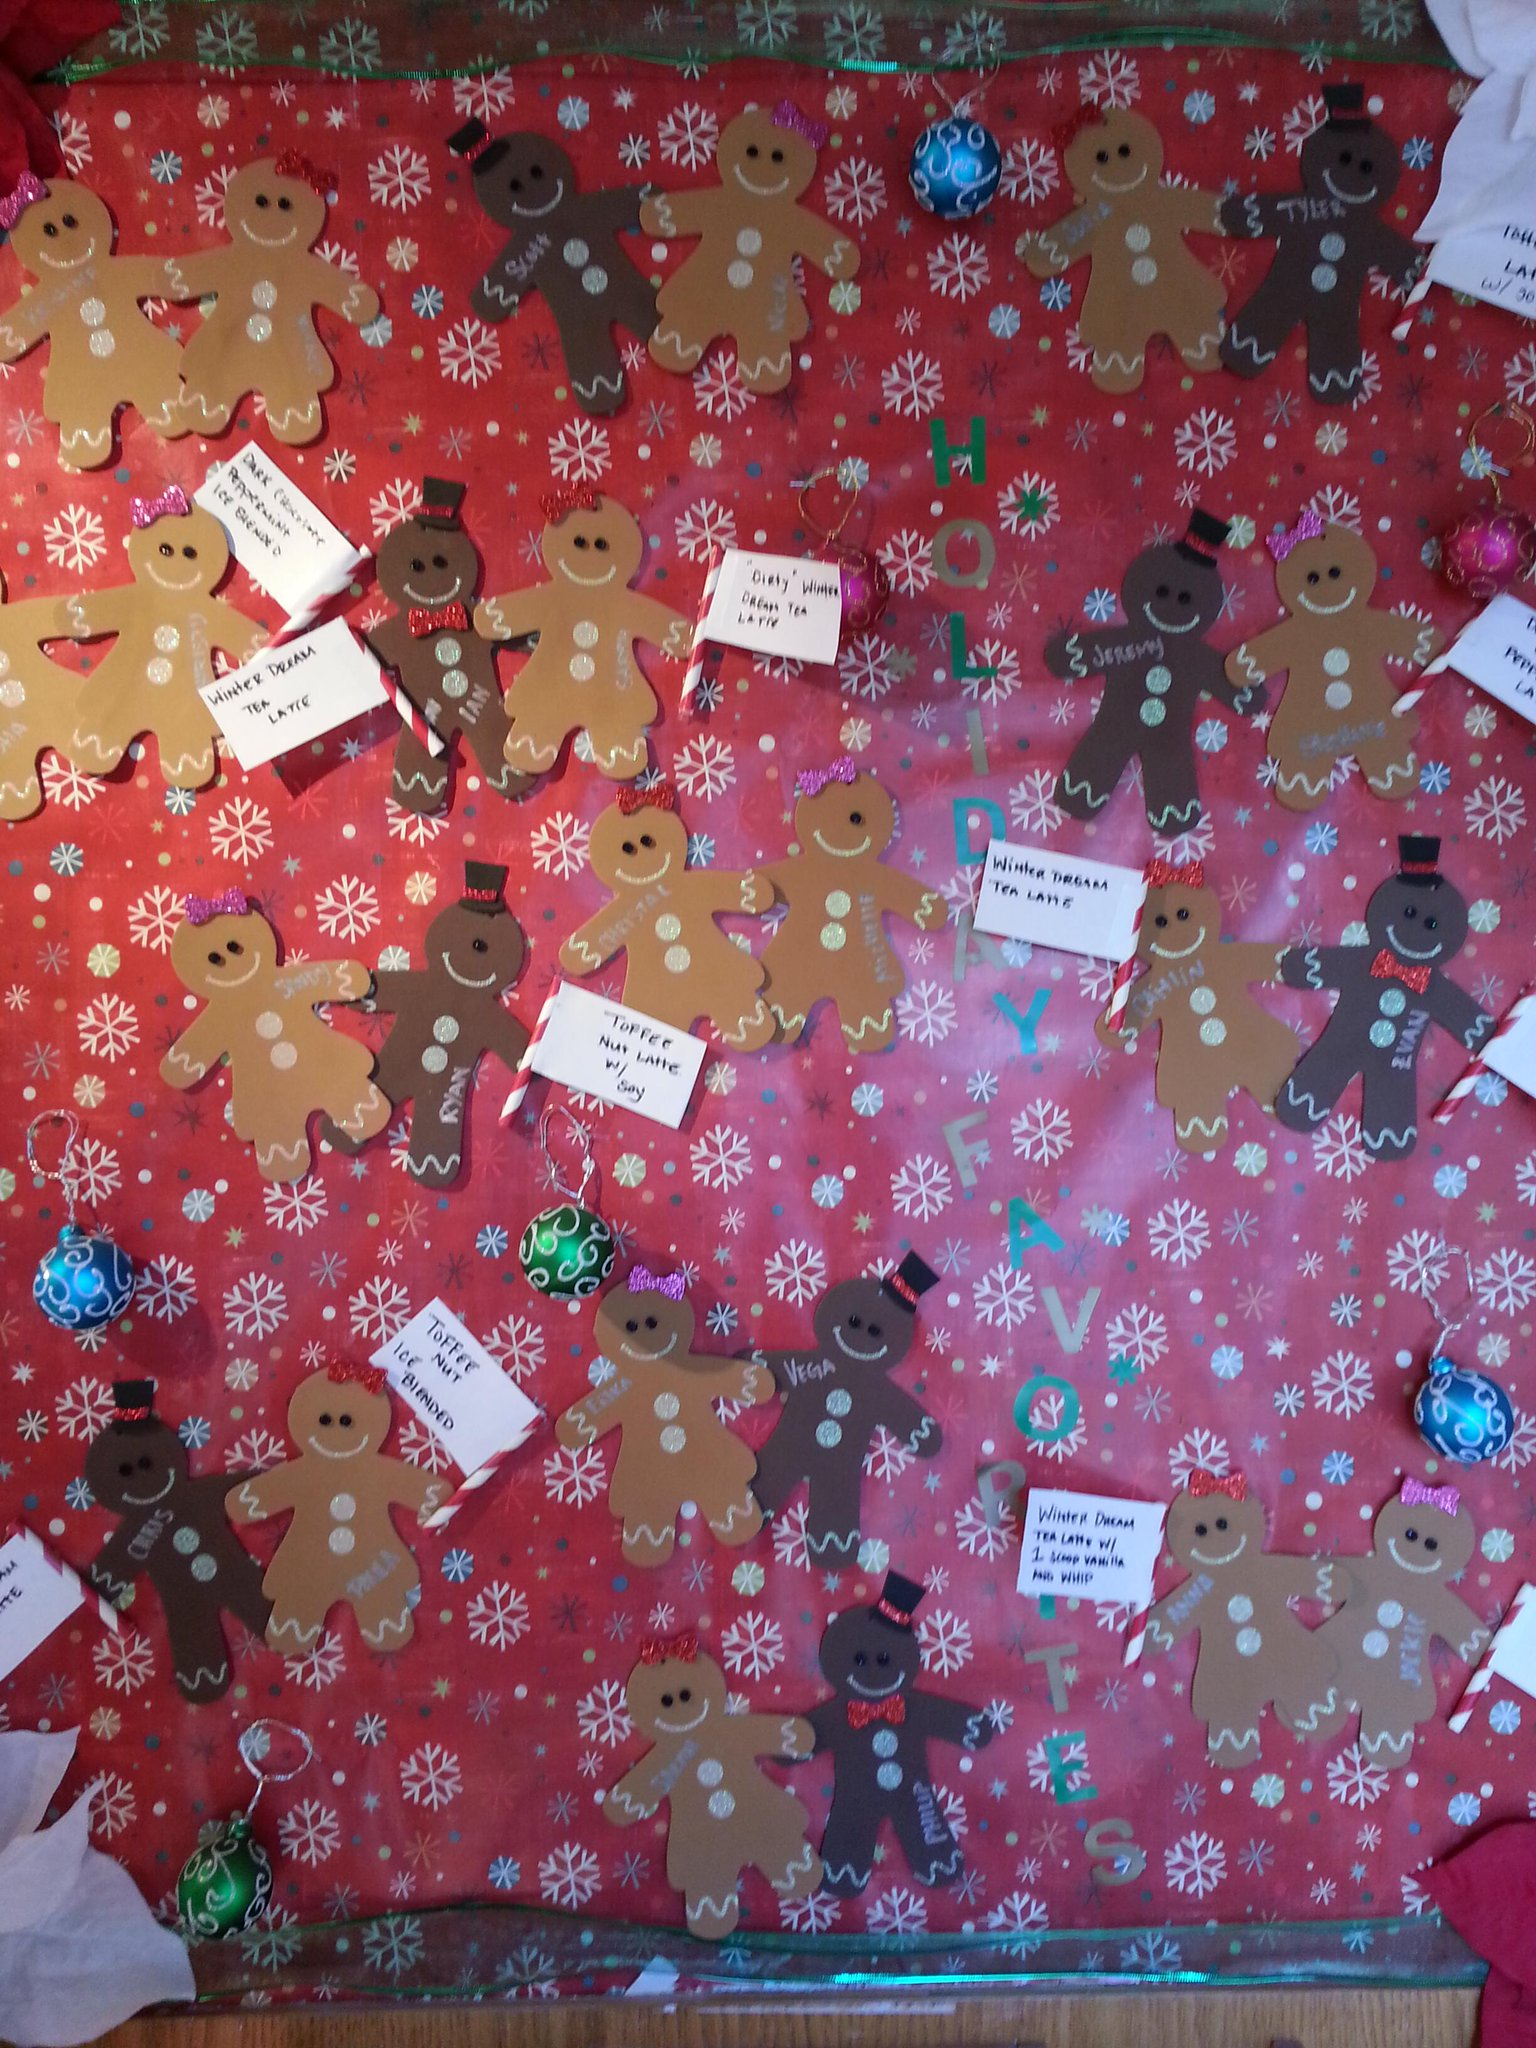 Fun bulletin board at @coffebean featuring staffers' favorite drinks #WGBD http://t.co/sOlPDlKEo7